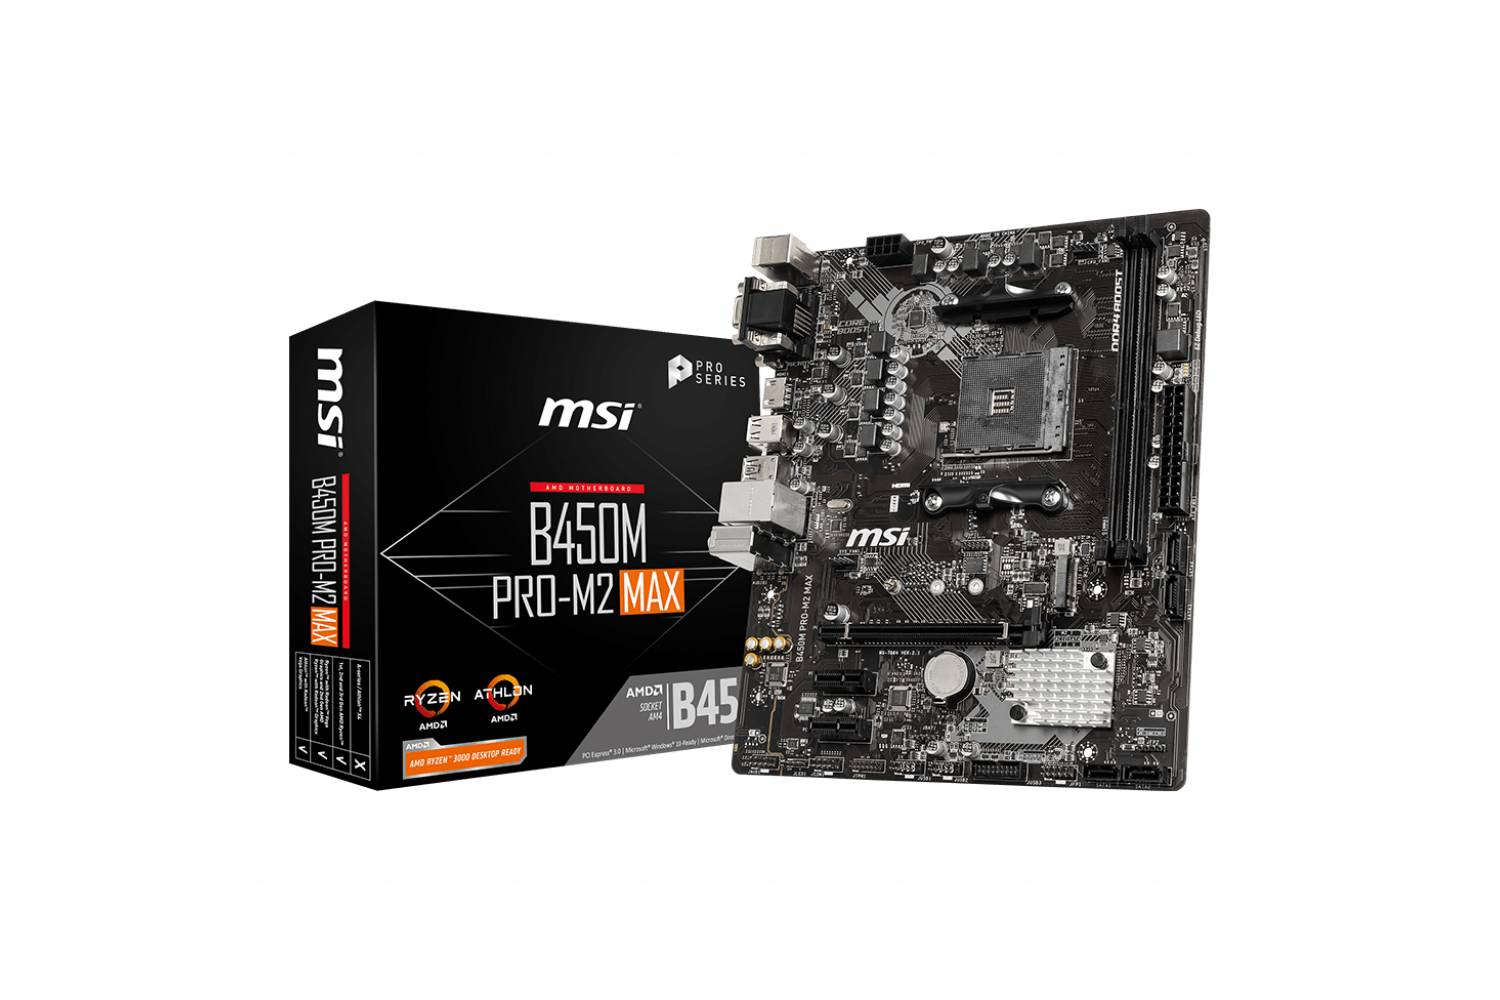 MSI B450m Pro M2 Max Motherboard-computerspace